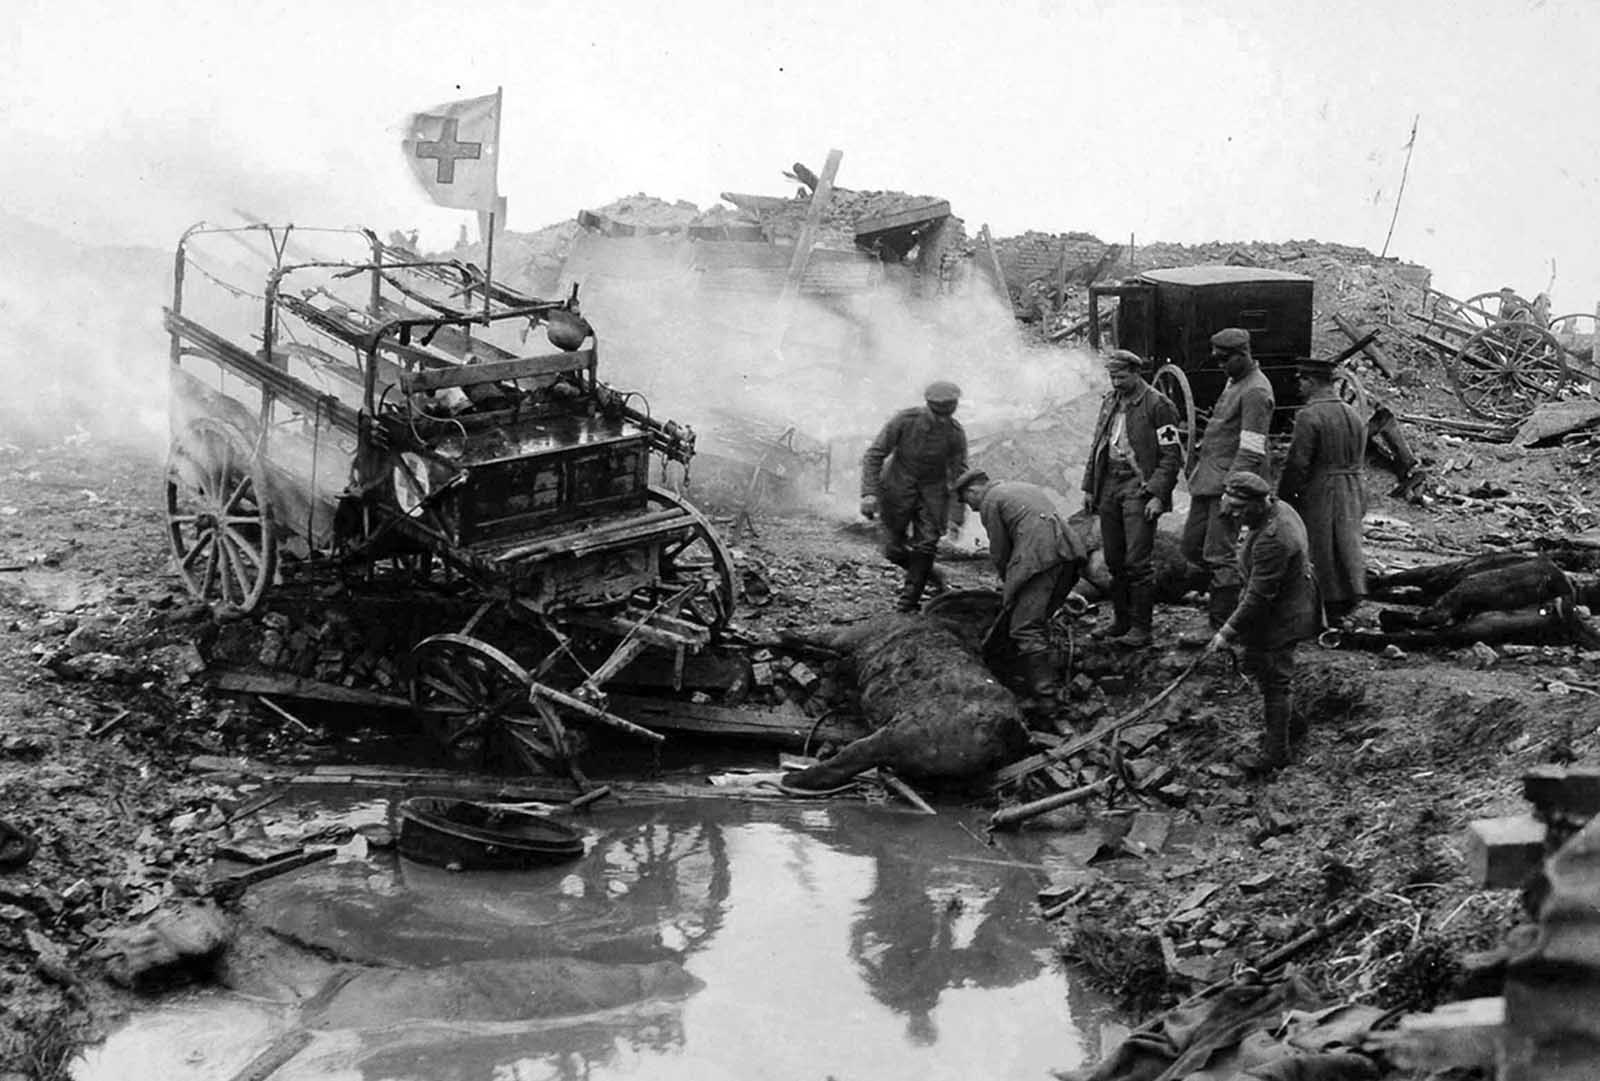 At Kemmel, West Flanders, Belgium. The effect of enemy artillery fire upon German ambulances, in May of 1918.